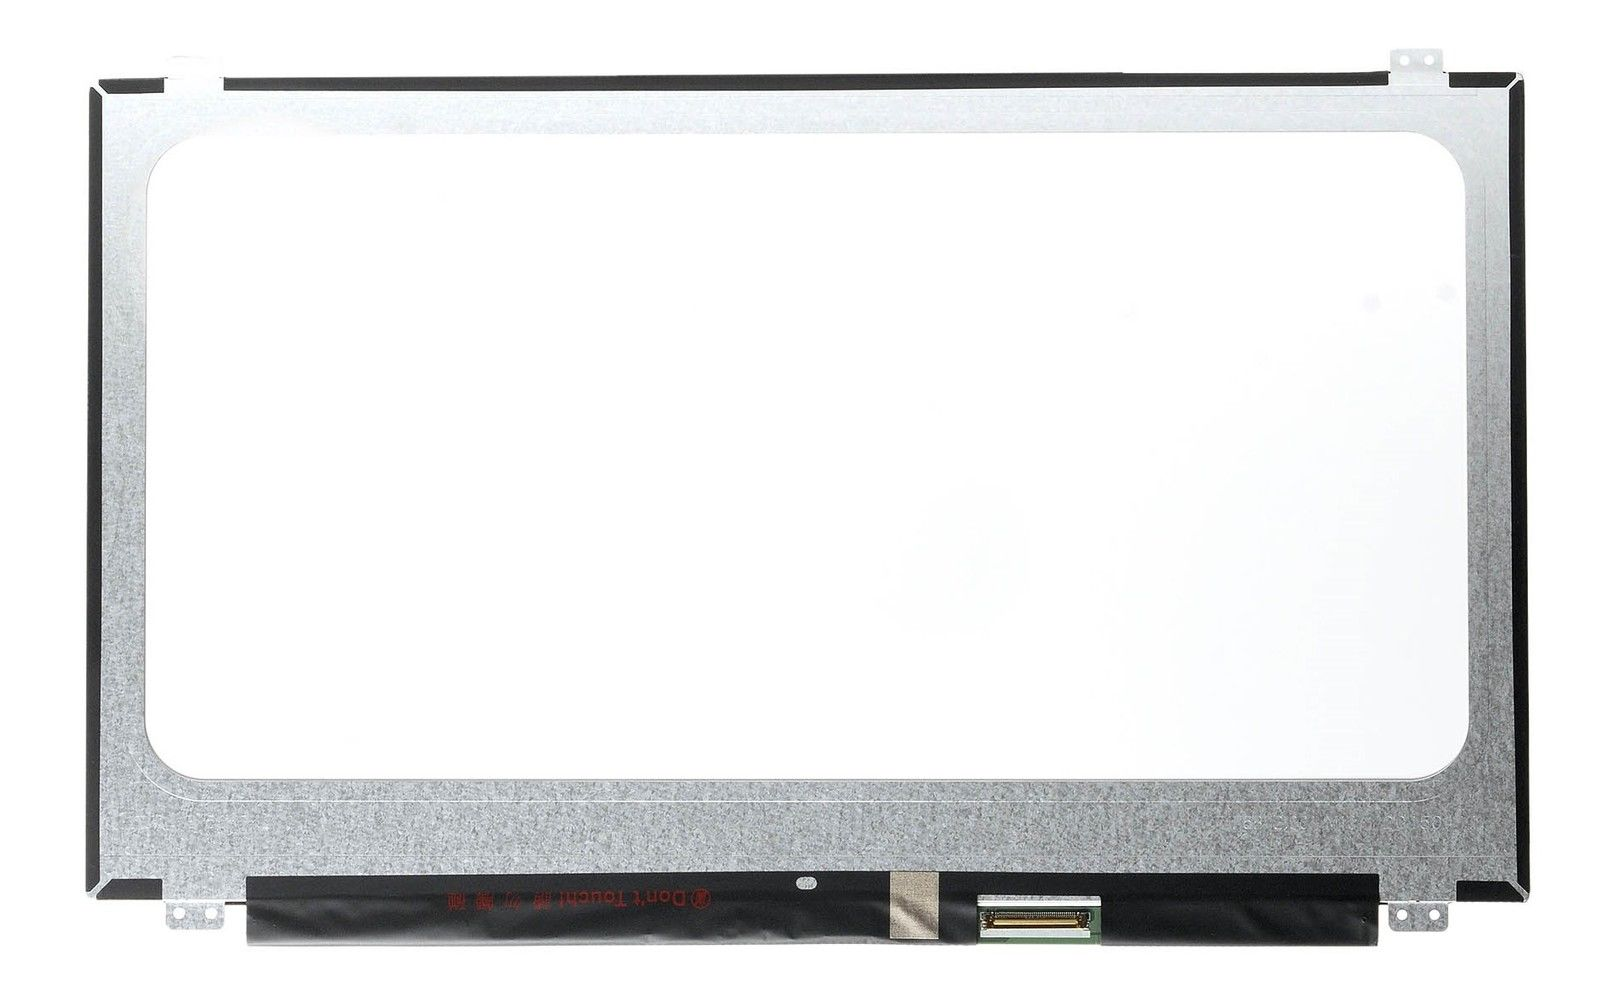 For Dell Inspiron 5551 5552 5555 5558 5559 Vostro 3558 Laptop LCD LED Touch Screen B156XTK01.0 JJ45K free shipping n156bgn e41 nt156whm t00 40pins edp lcd screen panel touch displayfor dell inspiron 15 5558 vostro 15 3558 jj45k